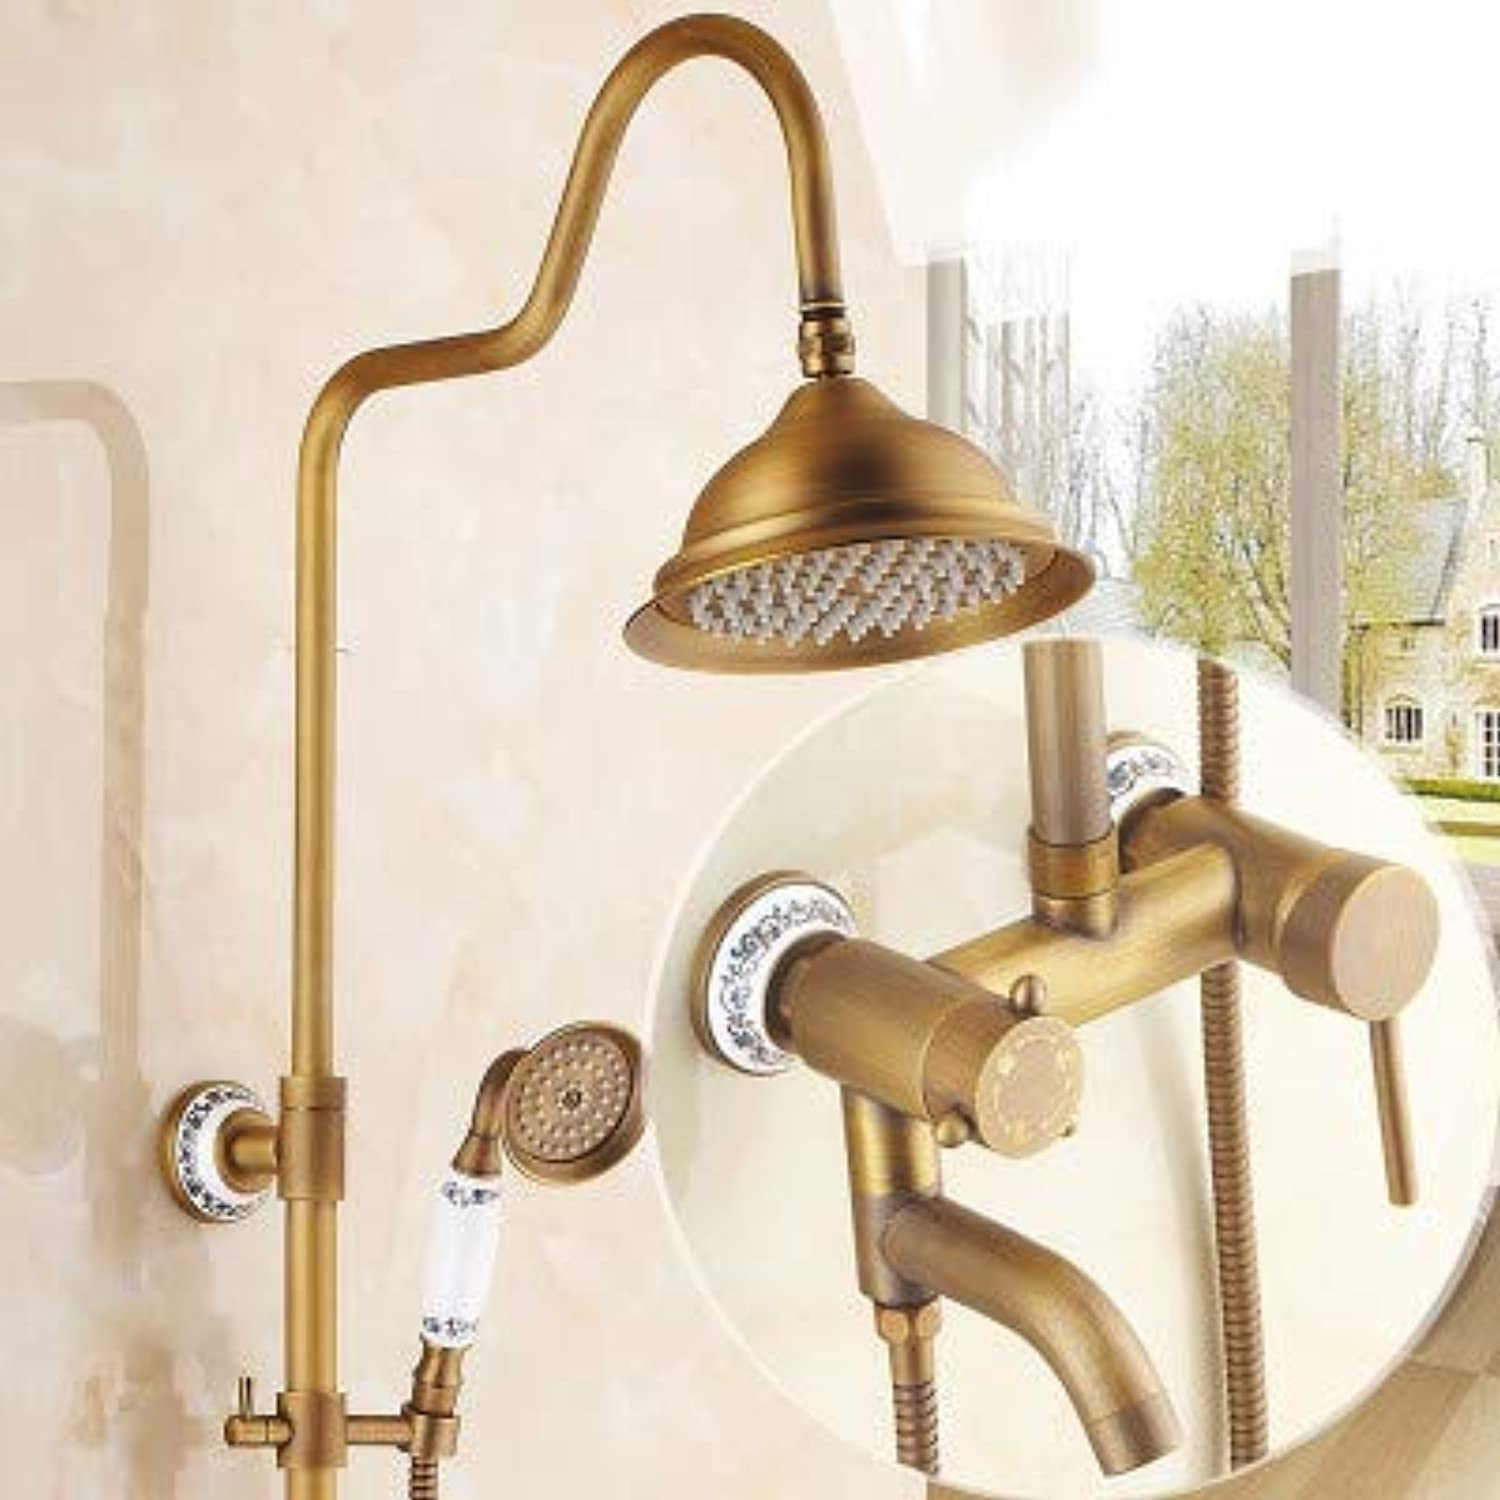 Hlluya Professional Sink Mixer Tap Kitchen Faucet All copper antique shower sprinkler package retro shower hot cold water faucet bath lifts sprinklers shower,